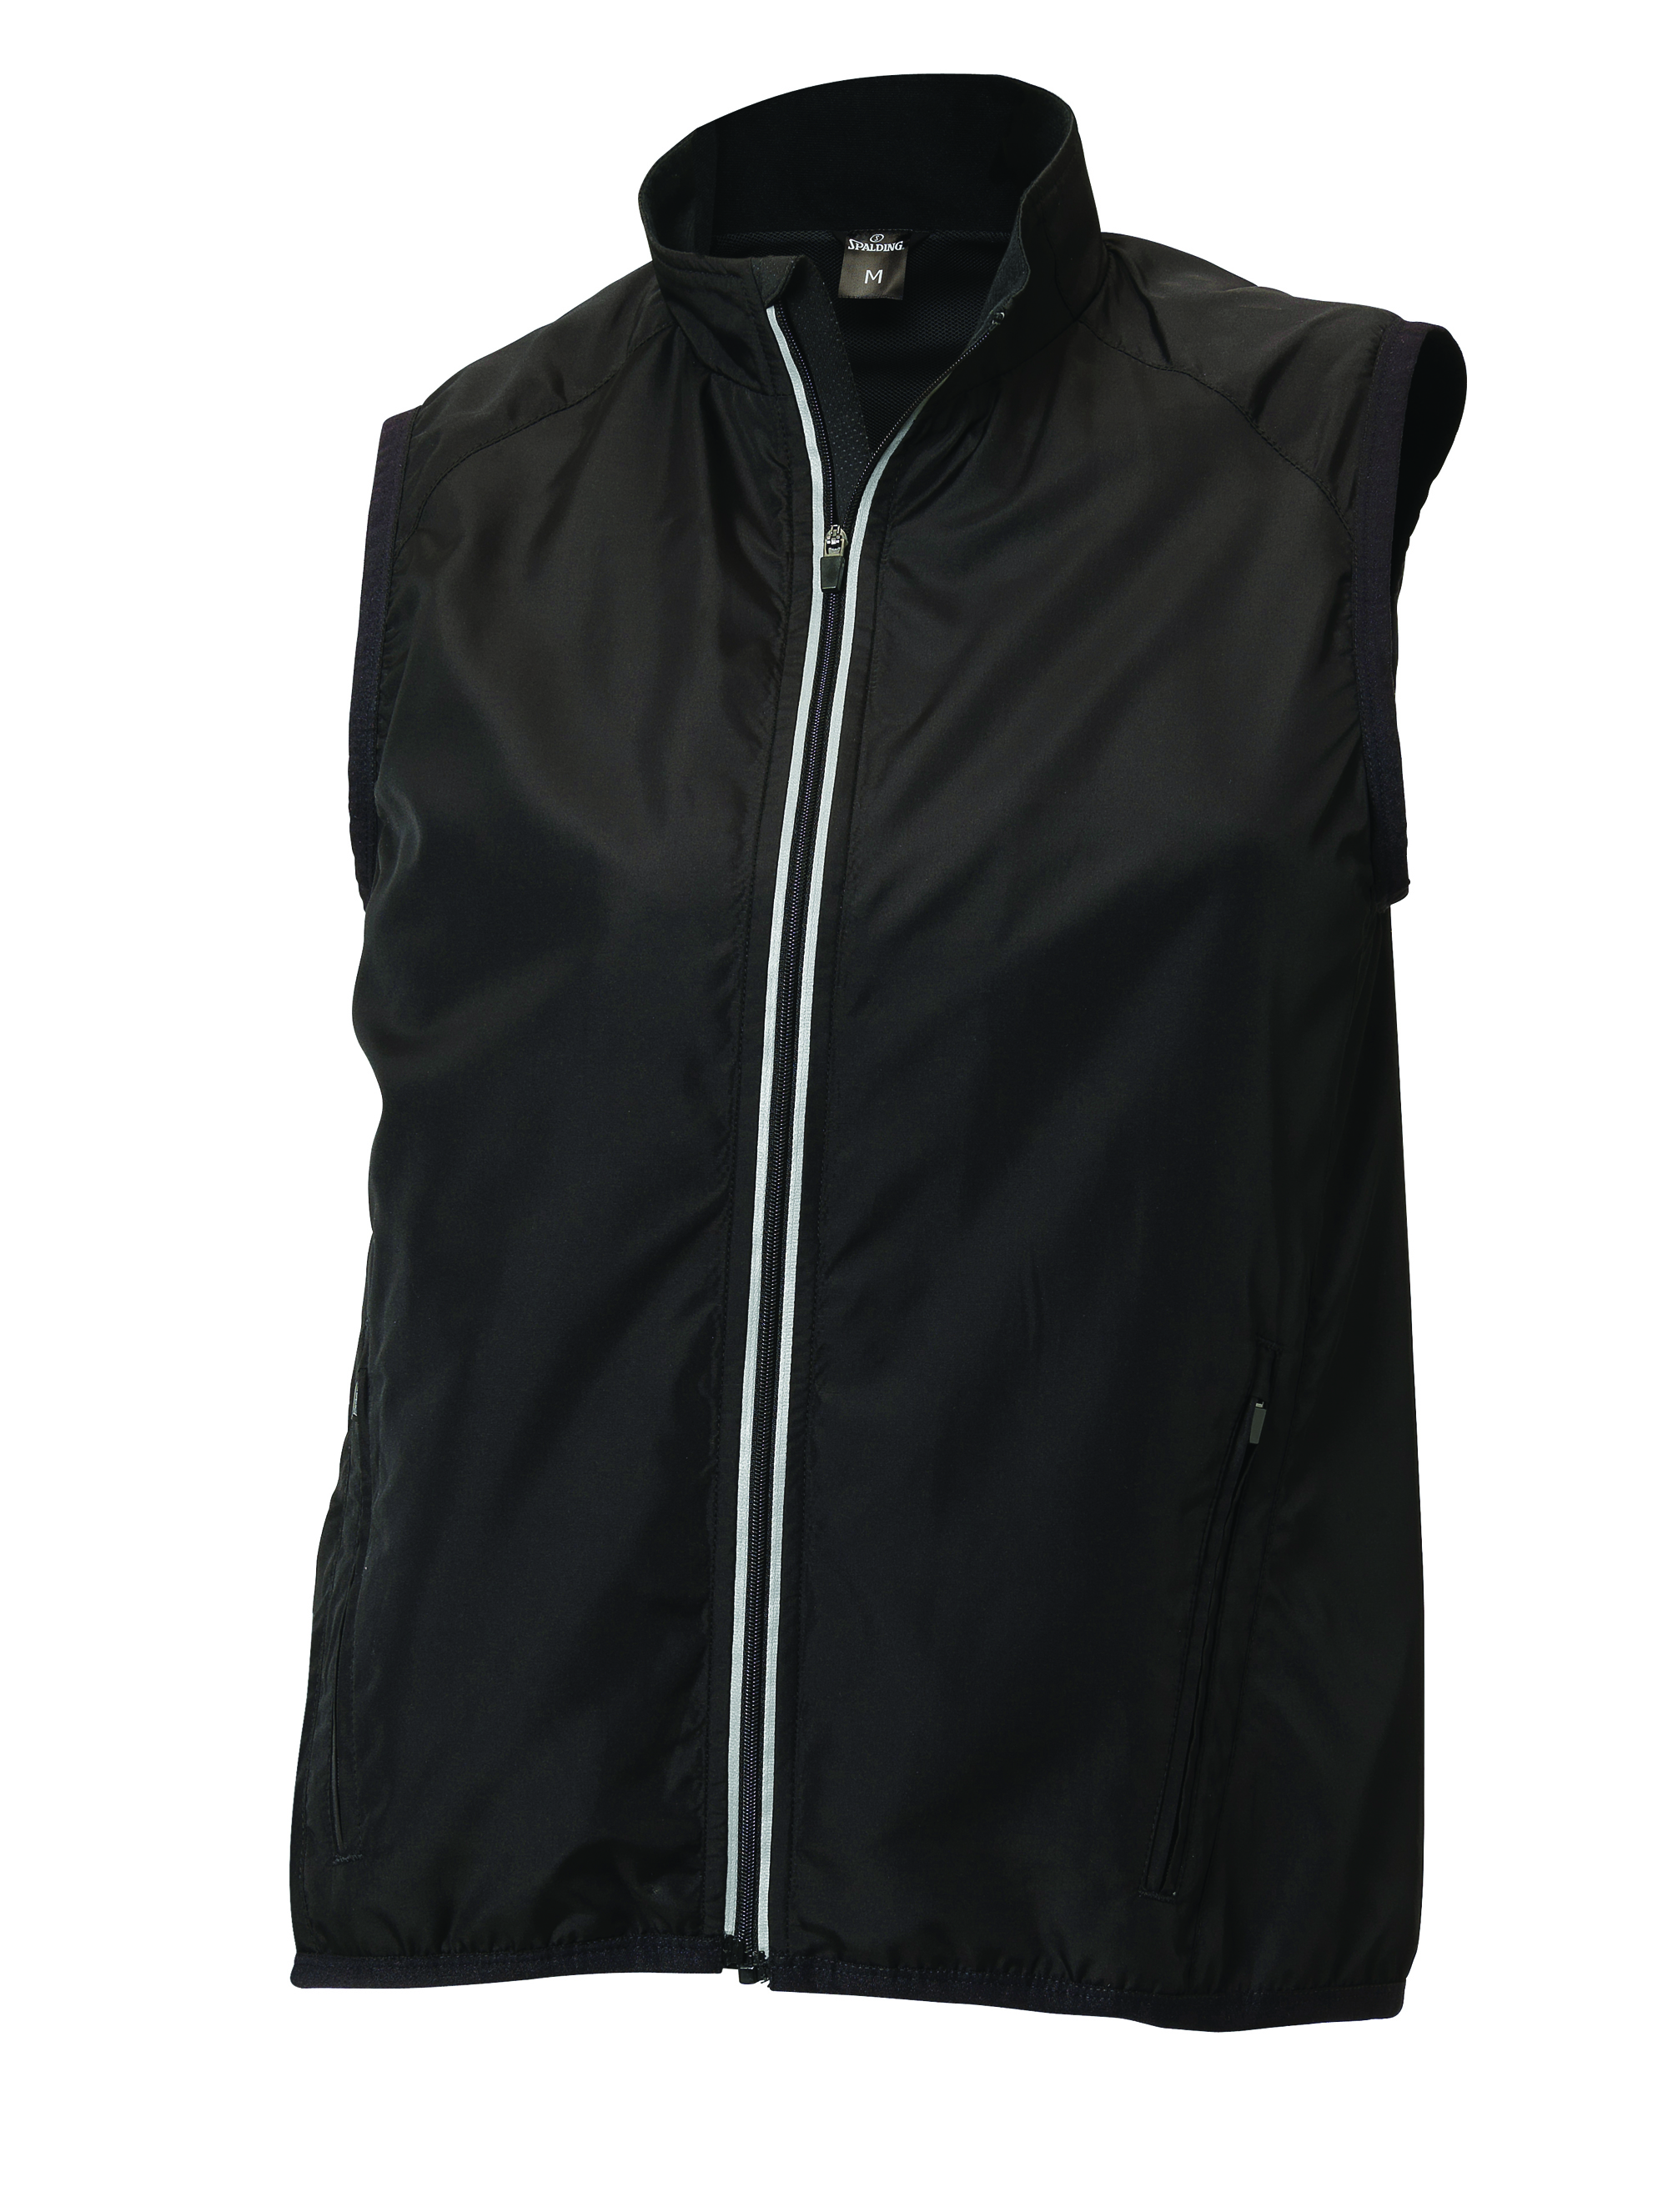 Exhilaration Gilet Women - Black - XS